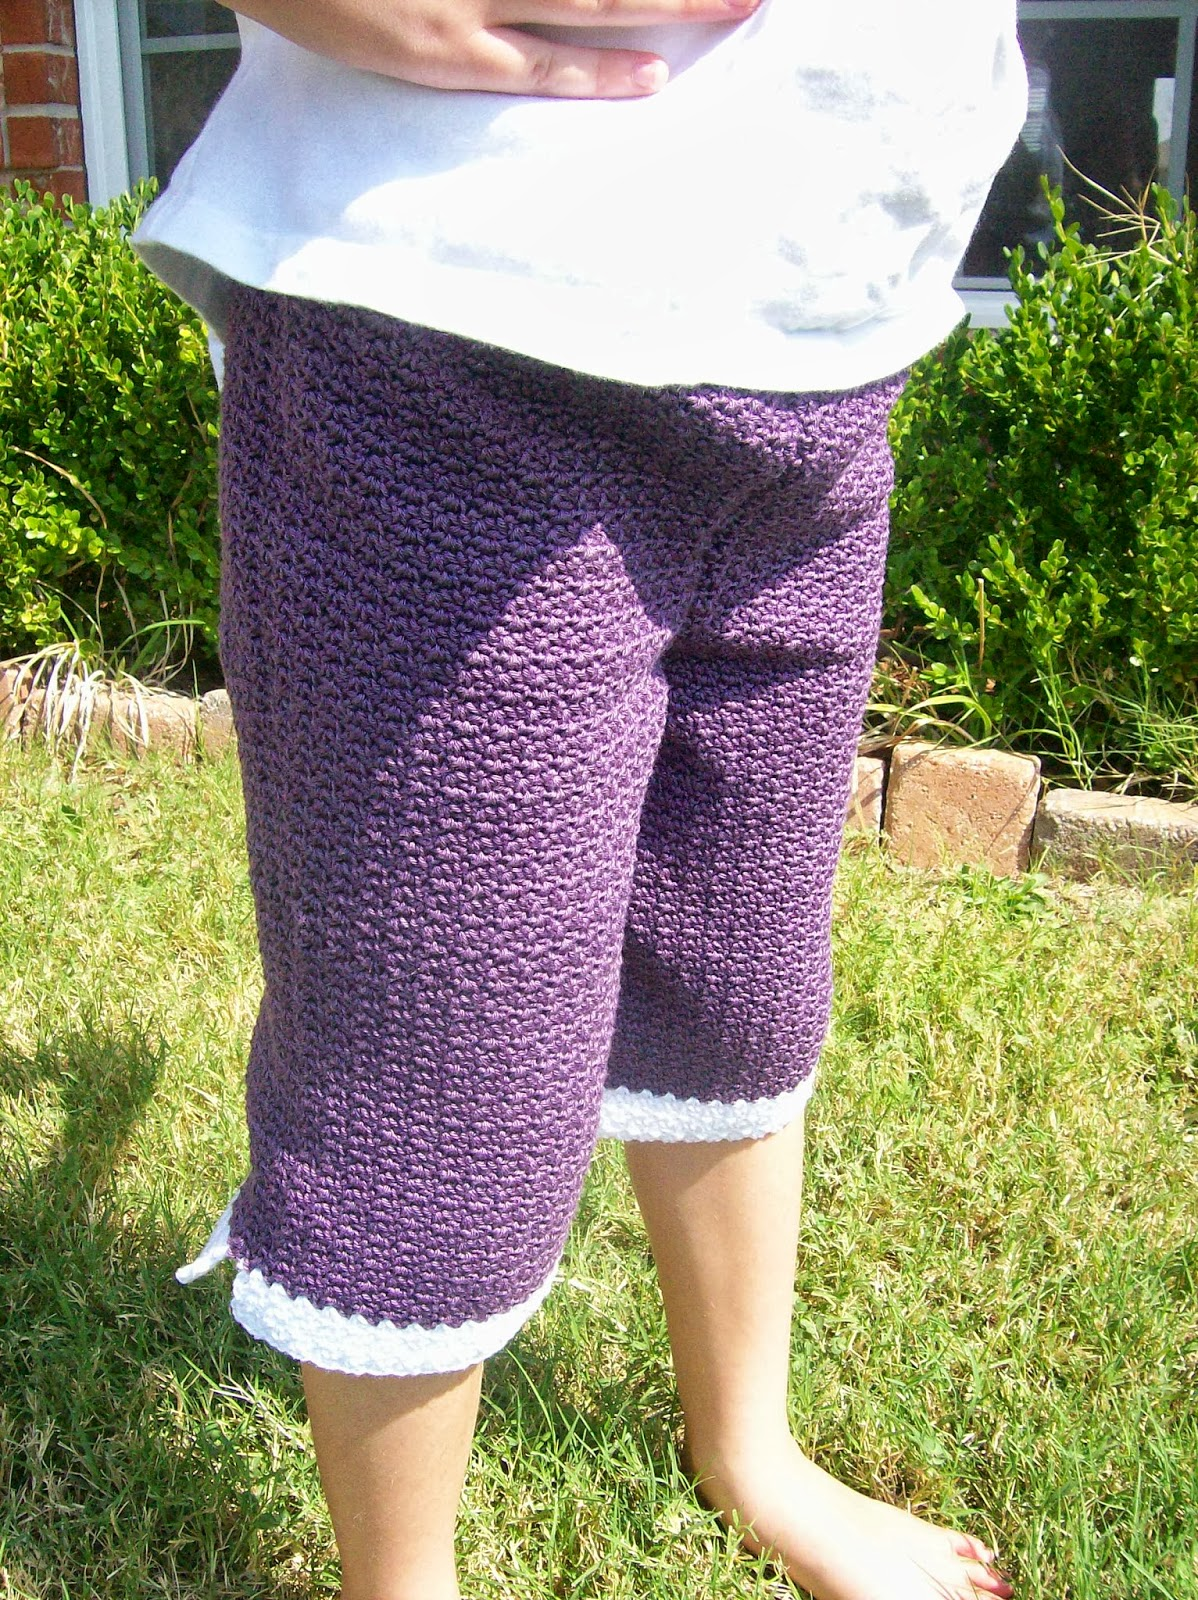 Child wearing purple crochet capri pants and standing barefoot in the grass in front of a flower bed.